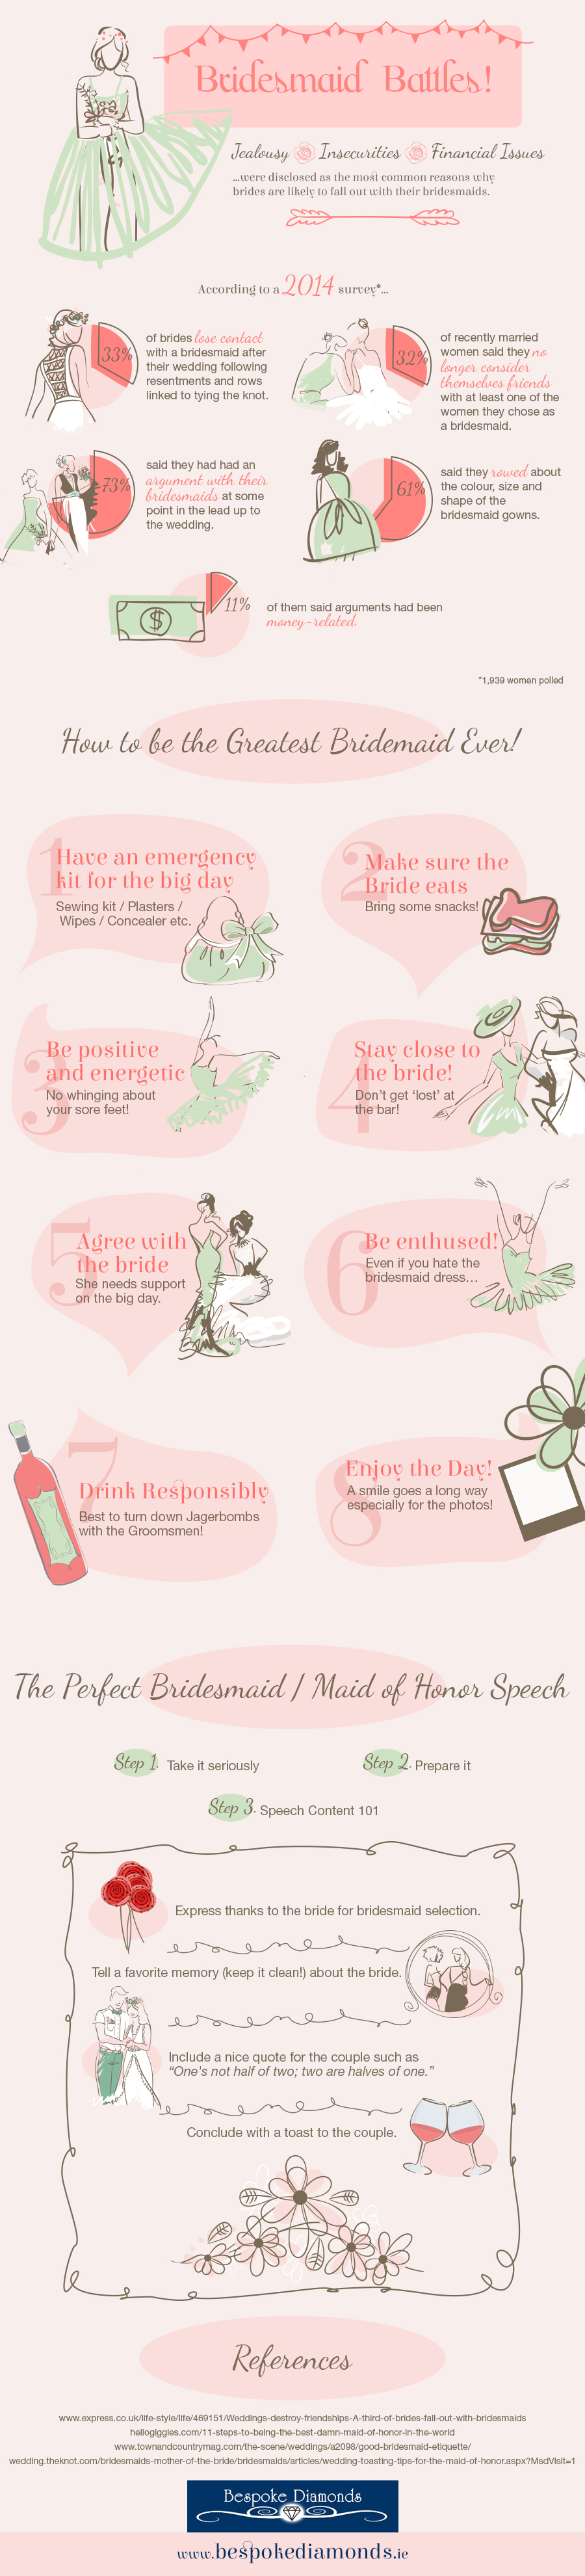 Infographic: Bridesmaid Battles